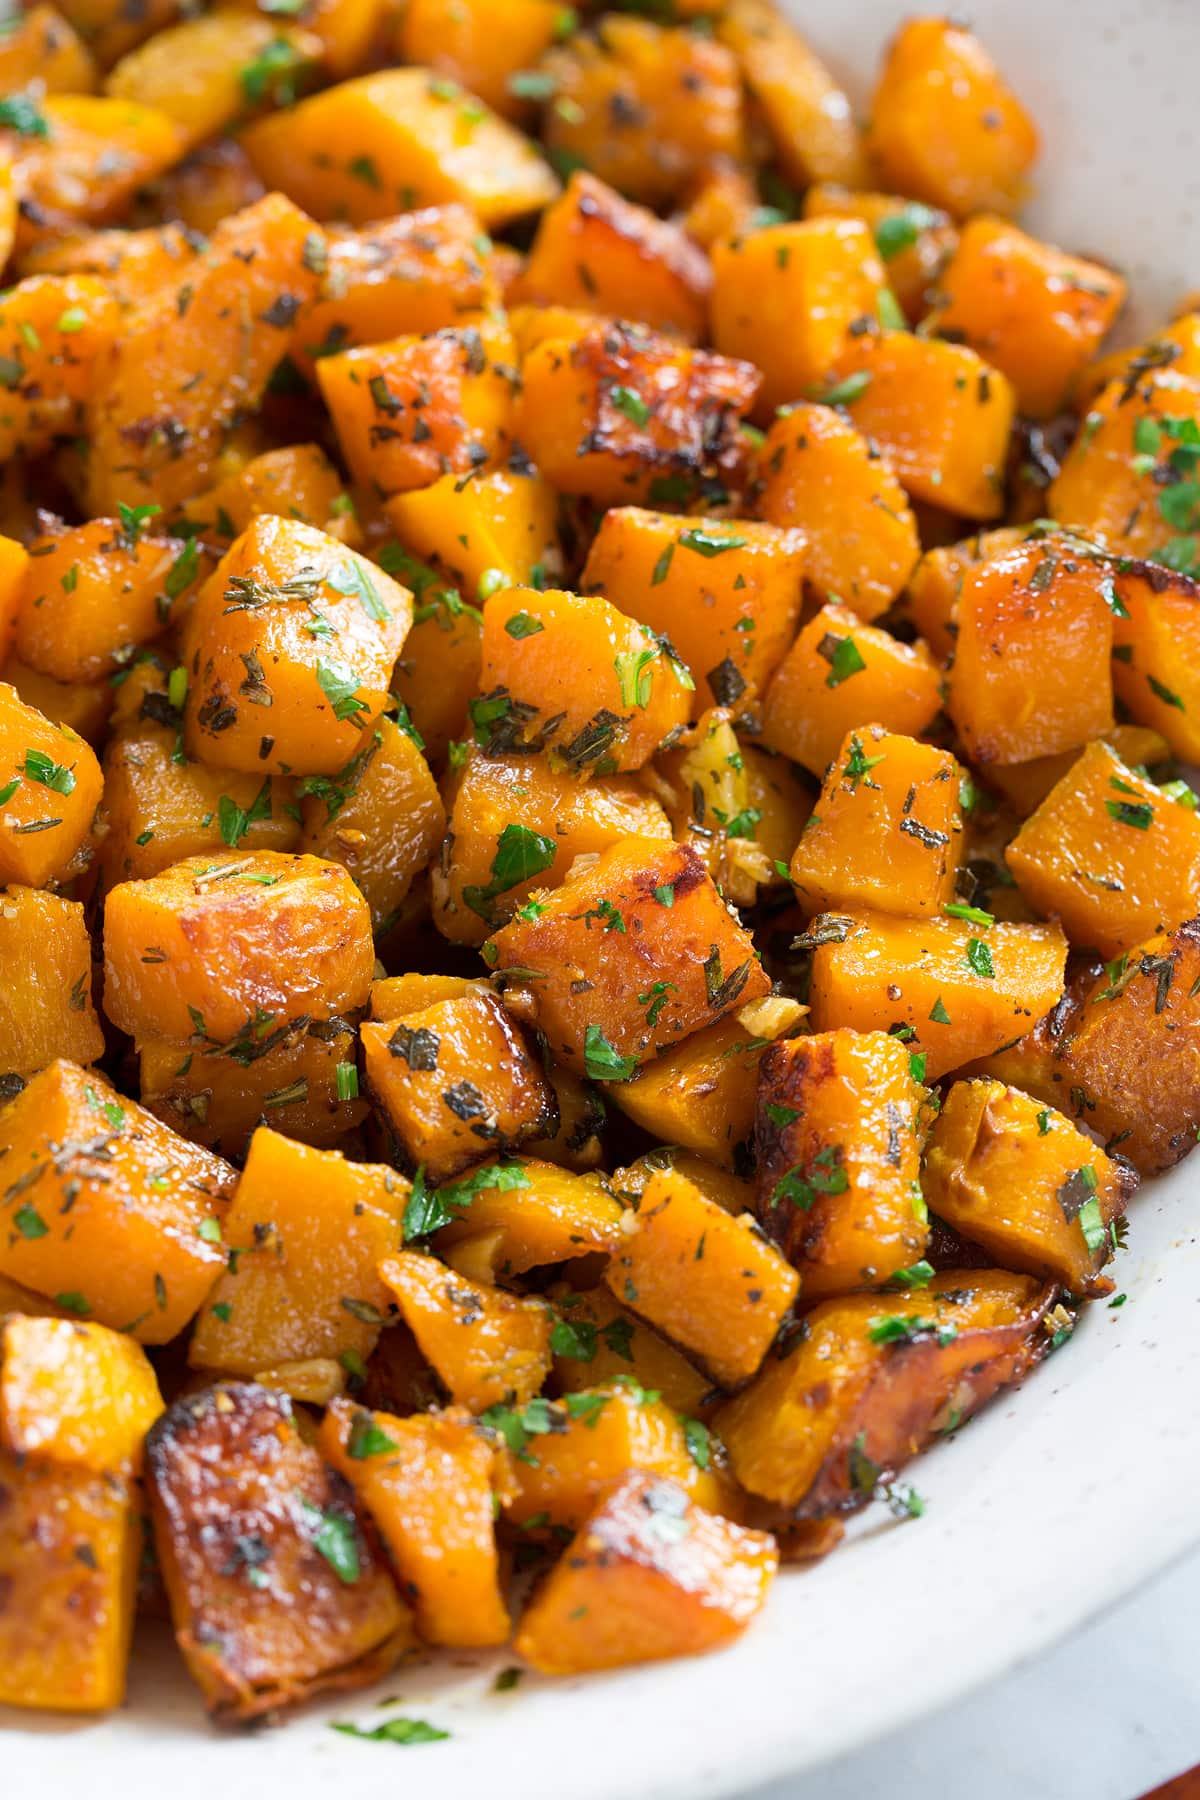 Roasted Butternut Squash With Garlic And Herbs Cooking Classy